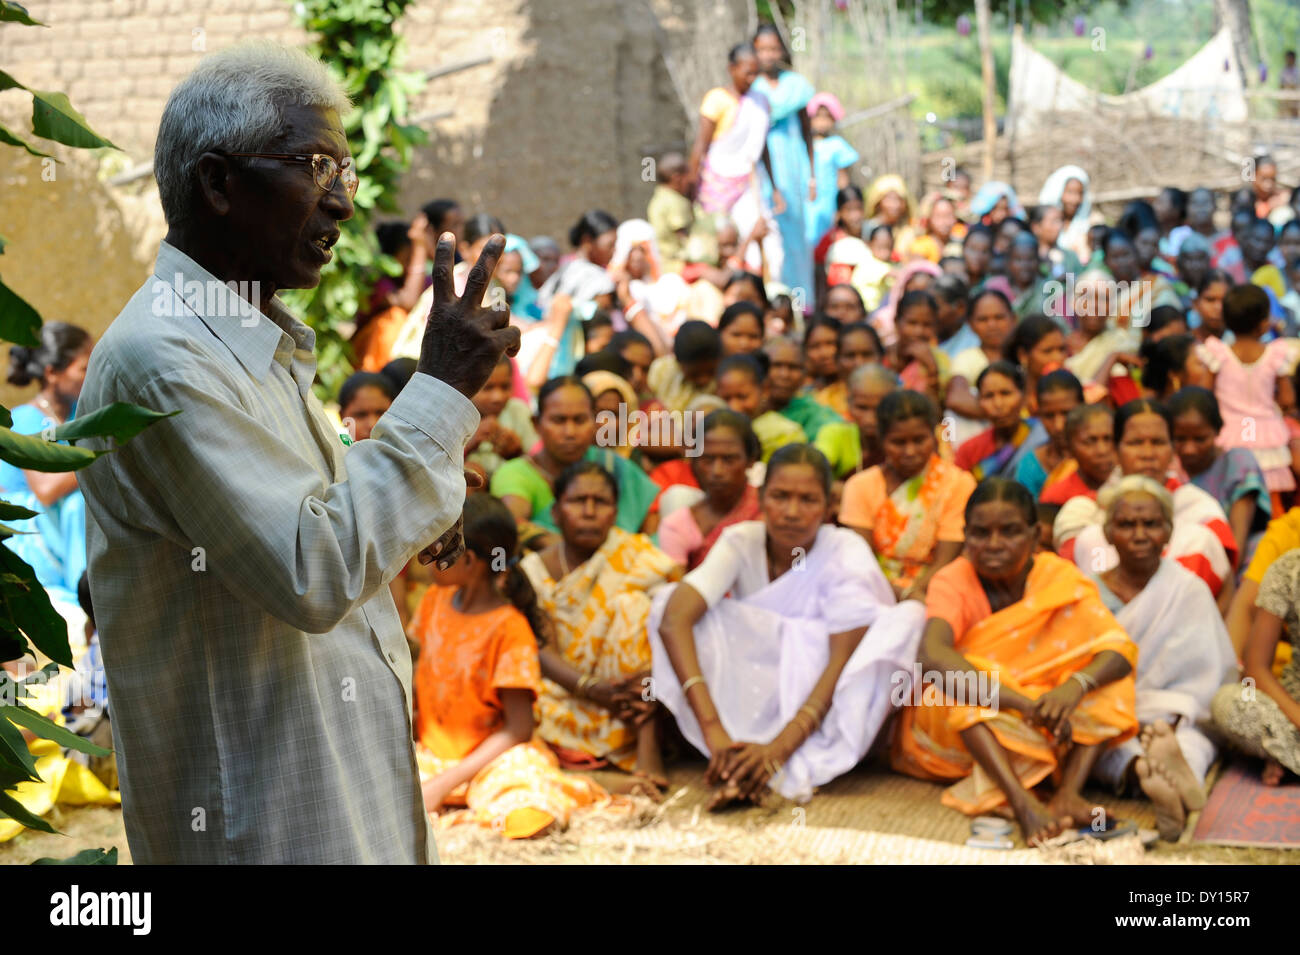 INDIA Jharkhand, Chaibasa, NGO Birsa organise Adivasi to fight for their land rights, meeting in village Debrbir Stock Photo